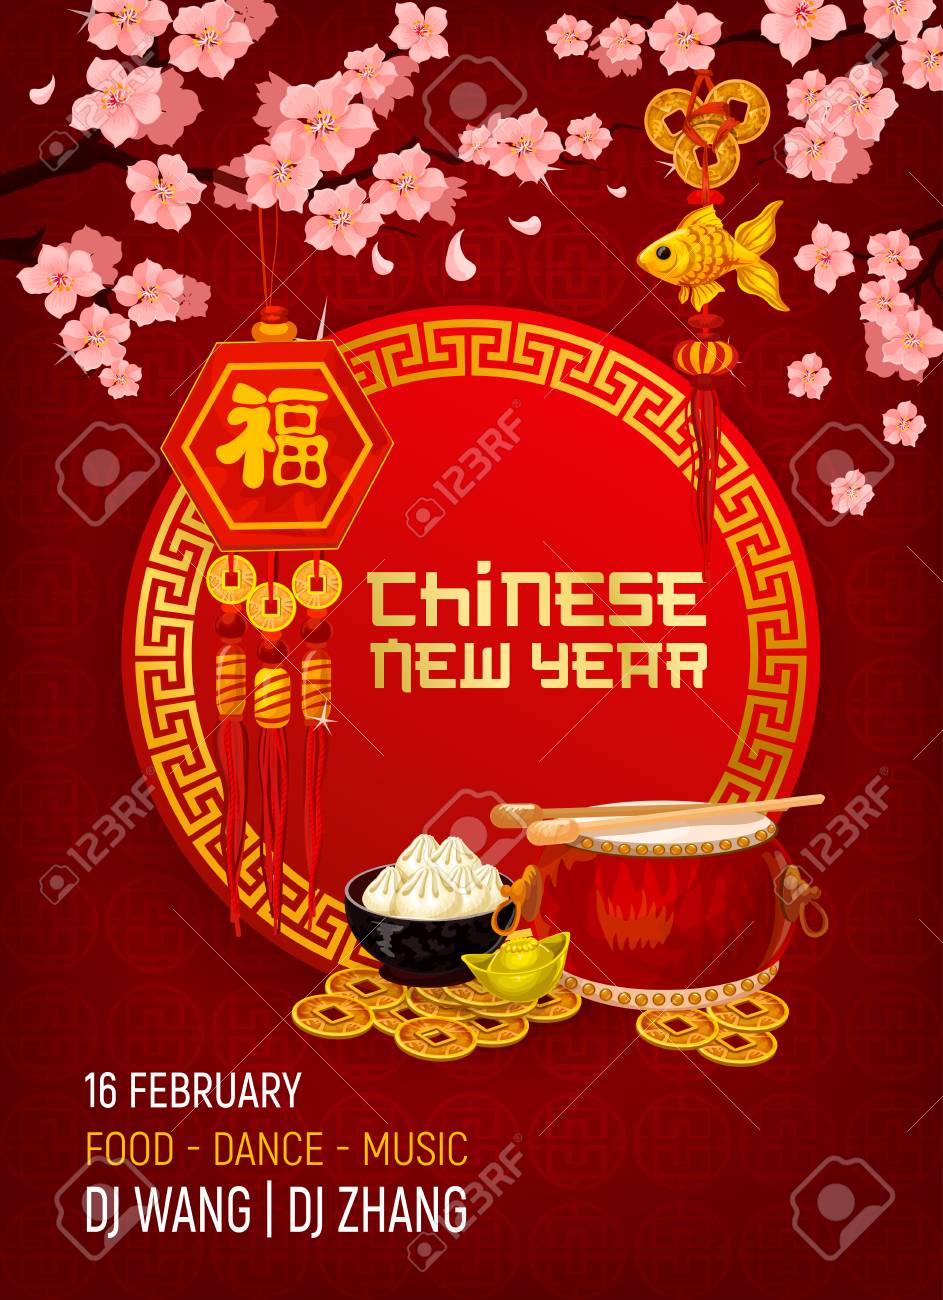 chinese new year holiday party invitation card design template for lunar spring holiday event vector